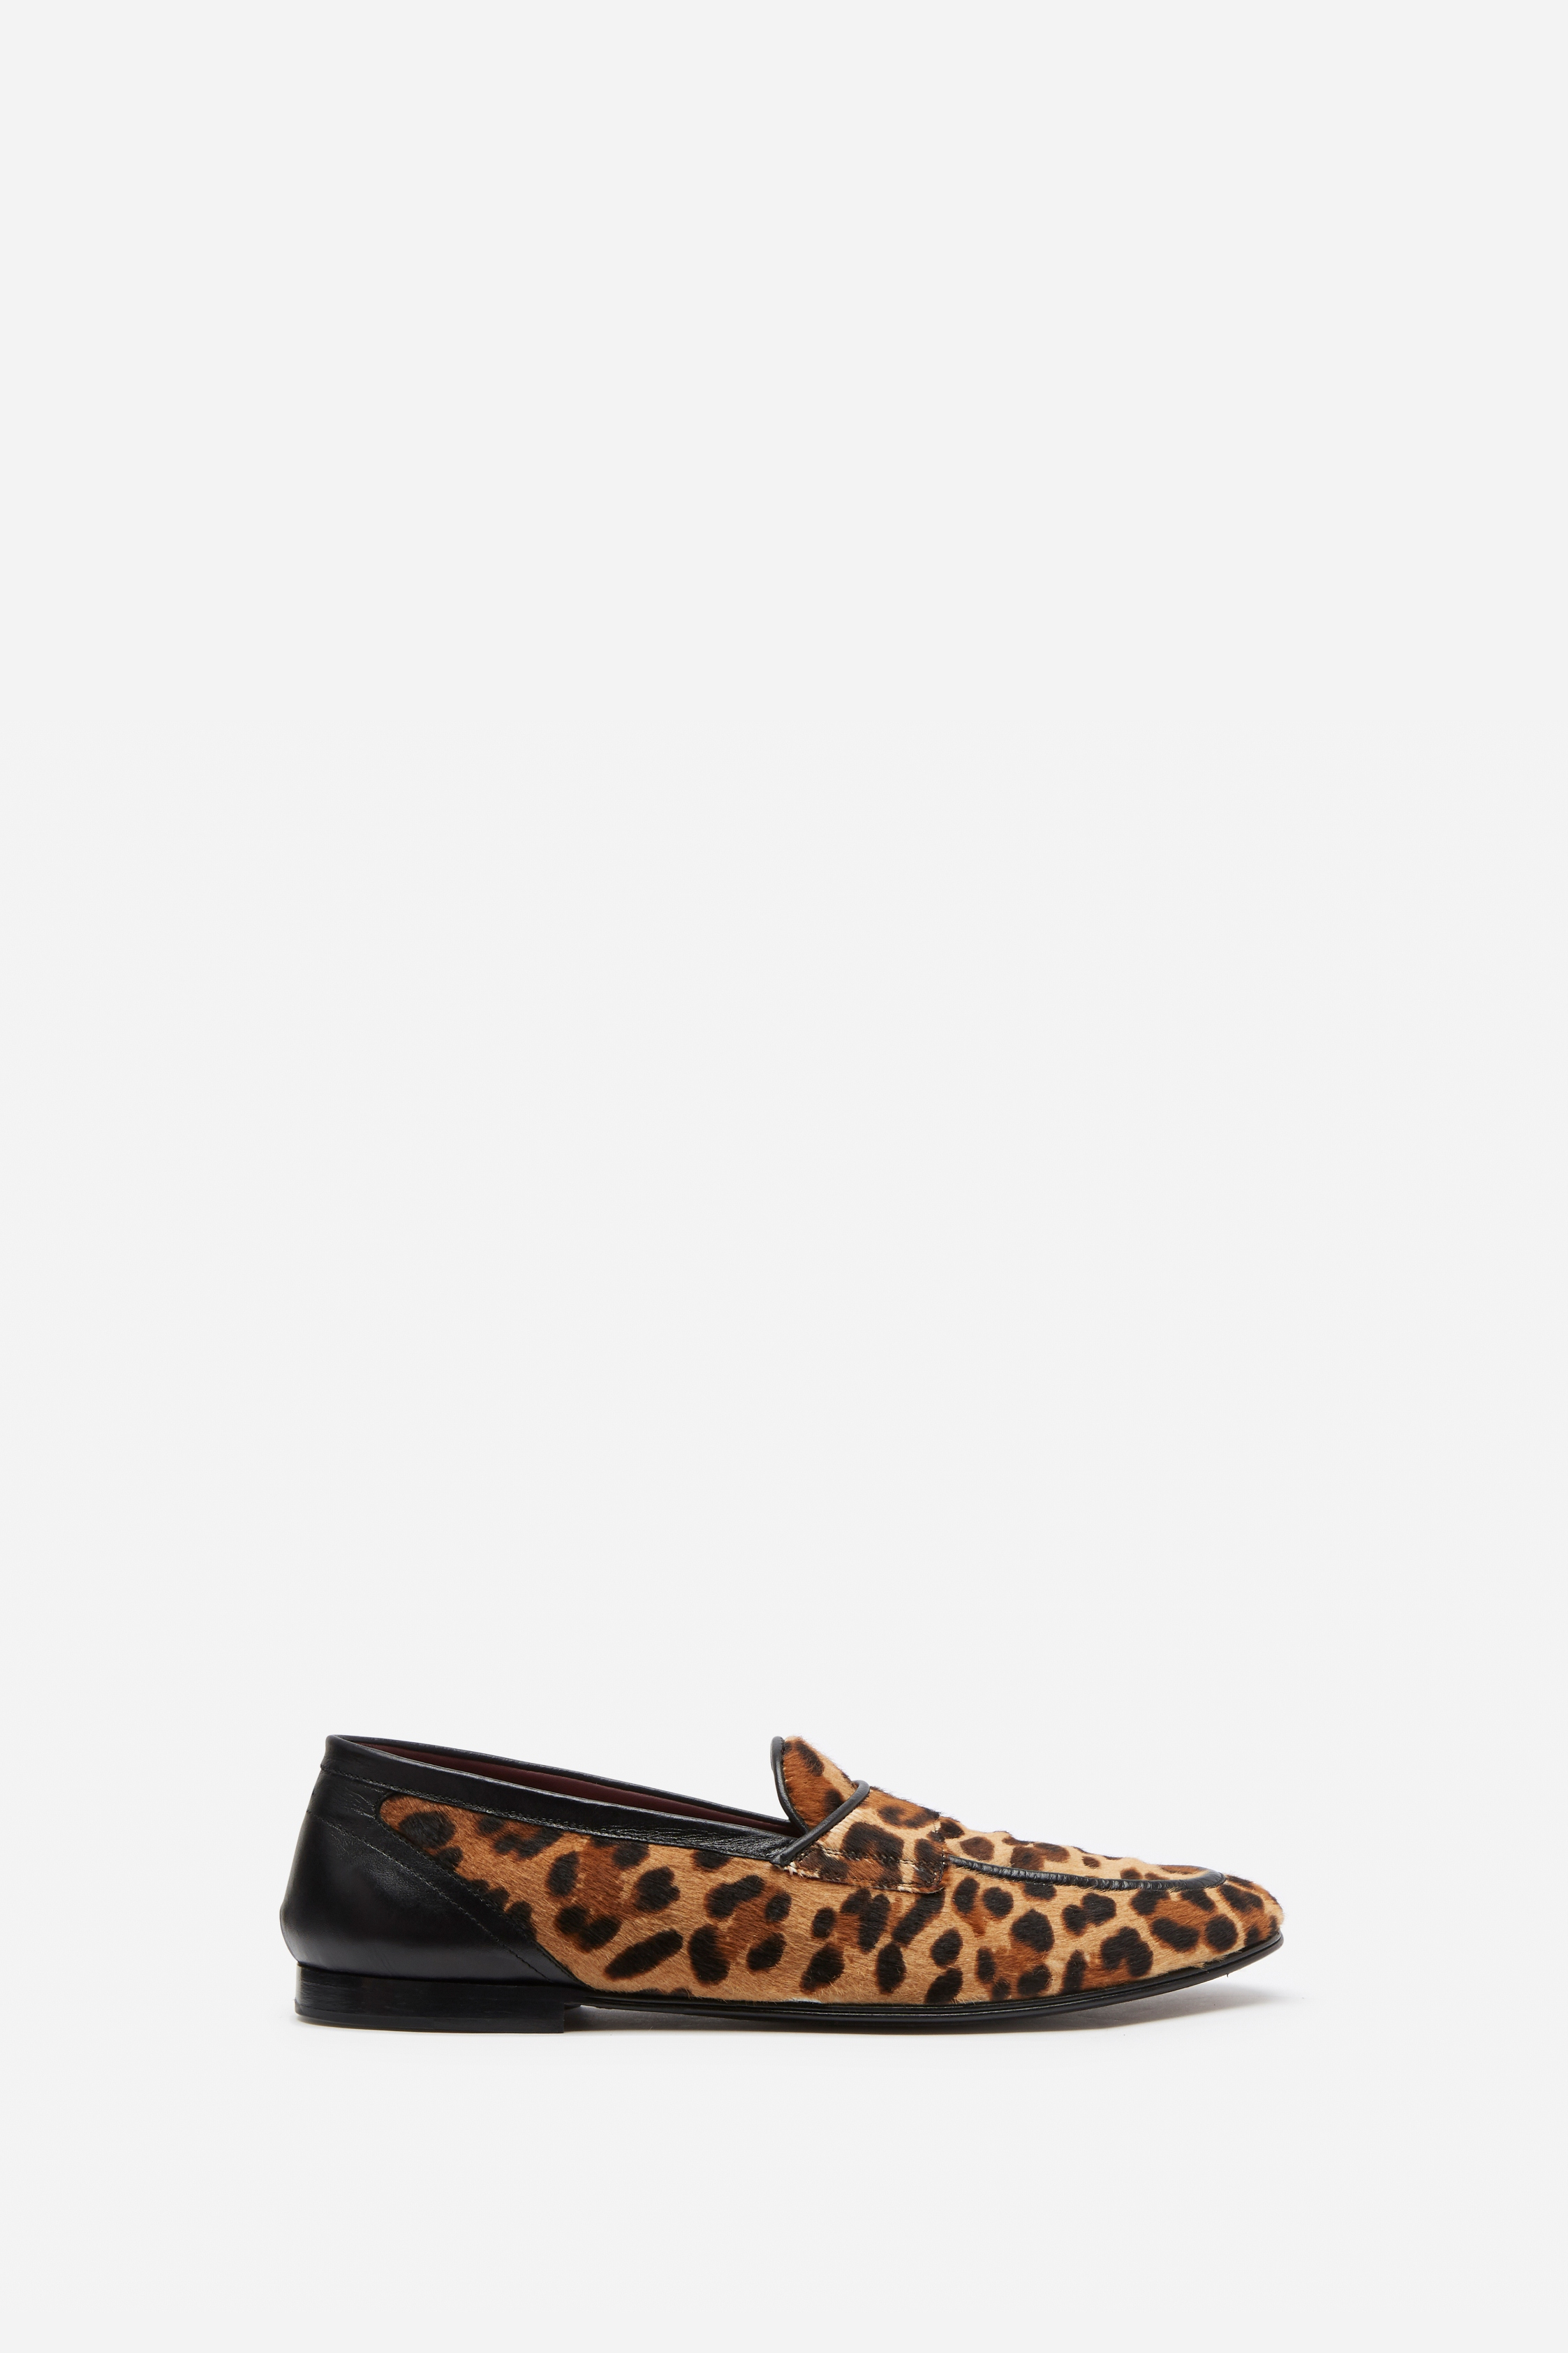 DOLCE & GABBANA ERICE LEOPARD LOAFERS IN PONY & CALFSKIN LEATHER